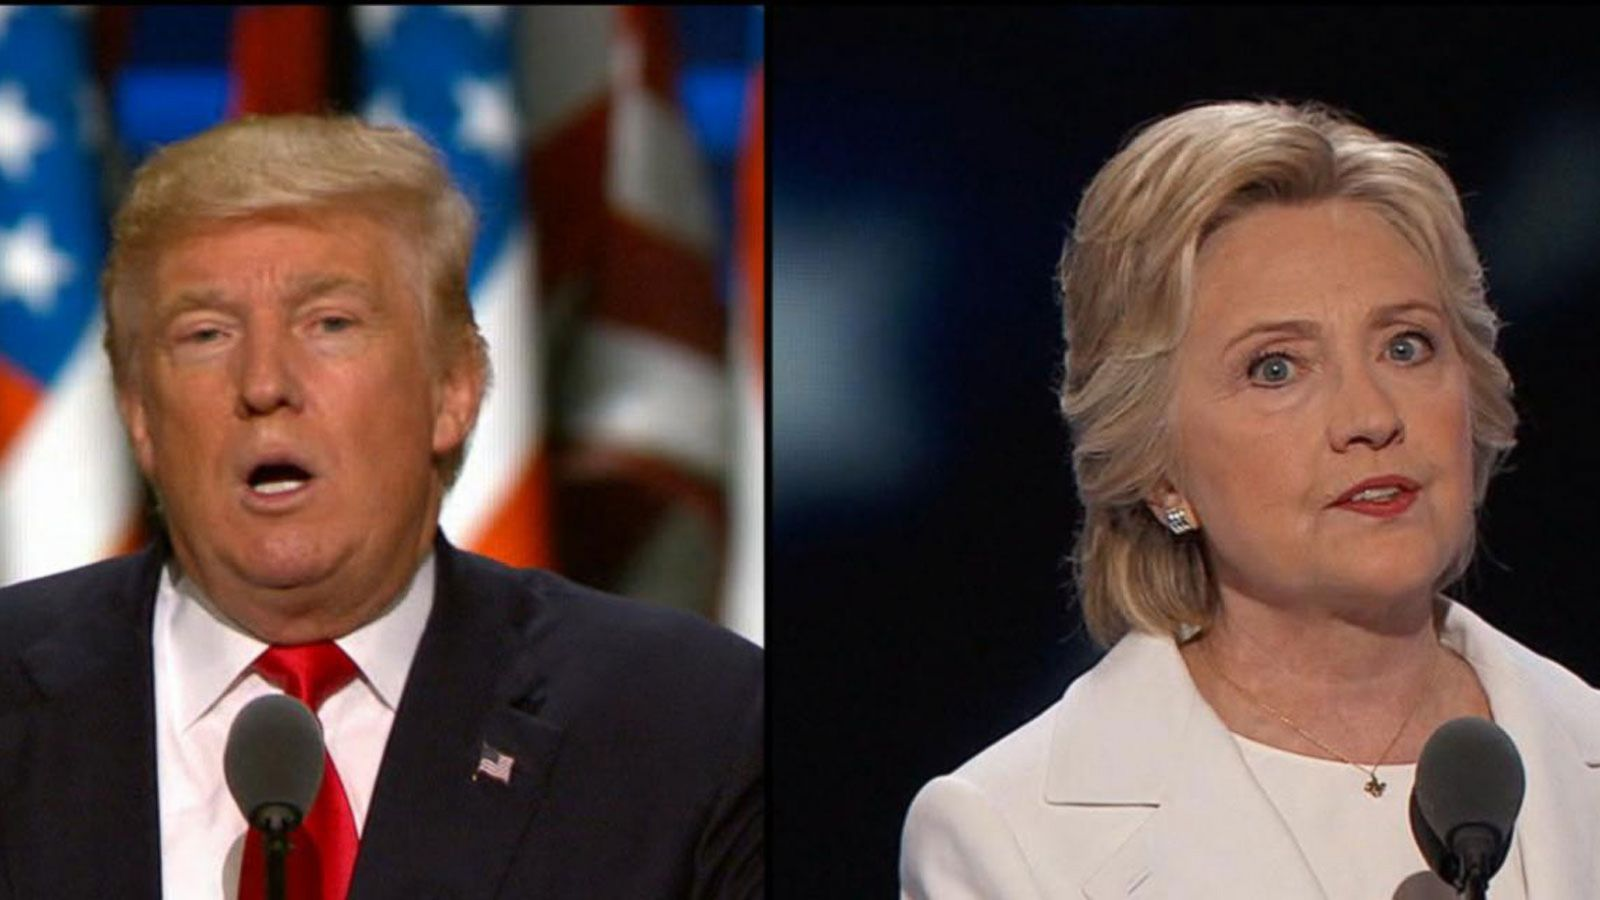 VIDEO: Donald Trump Doubles Down on Calling Hillary Clinton a 'Bigot'